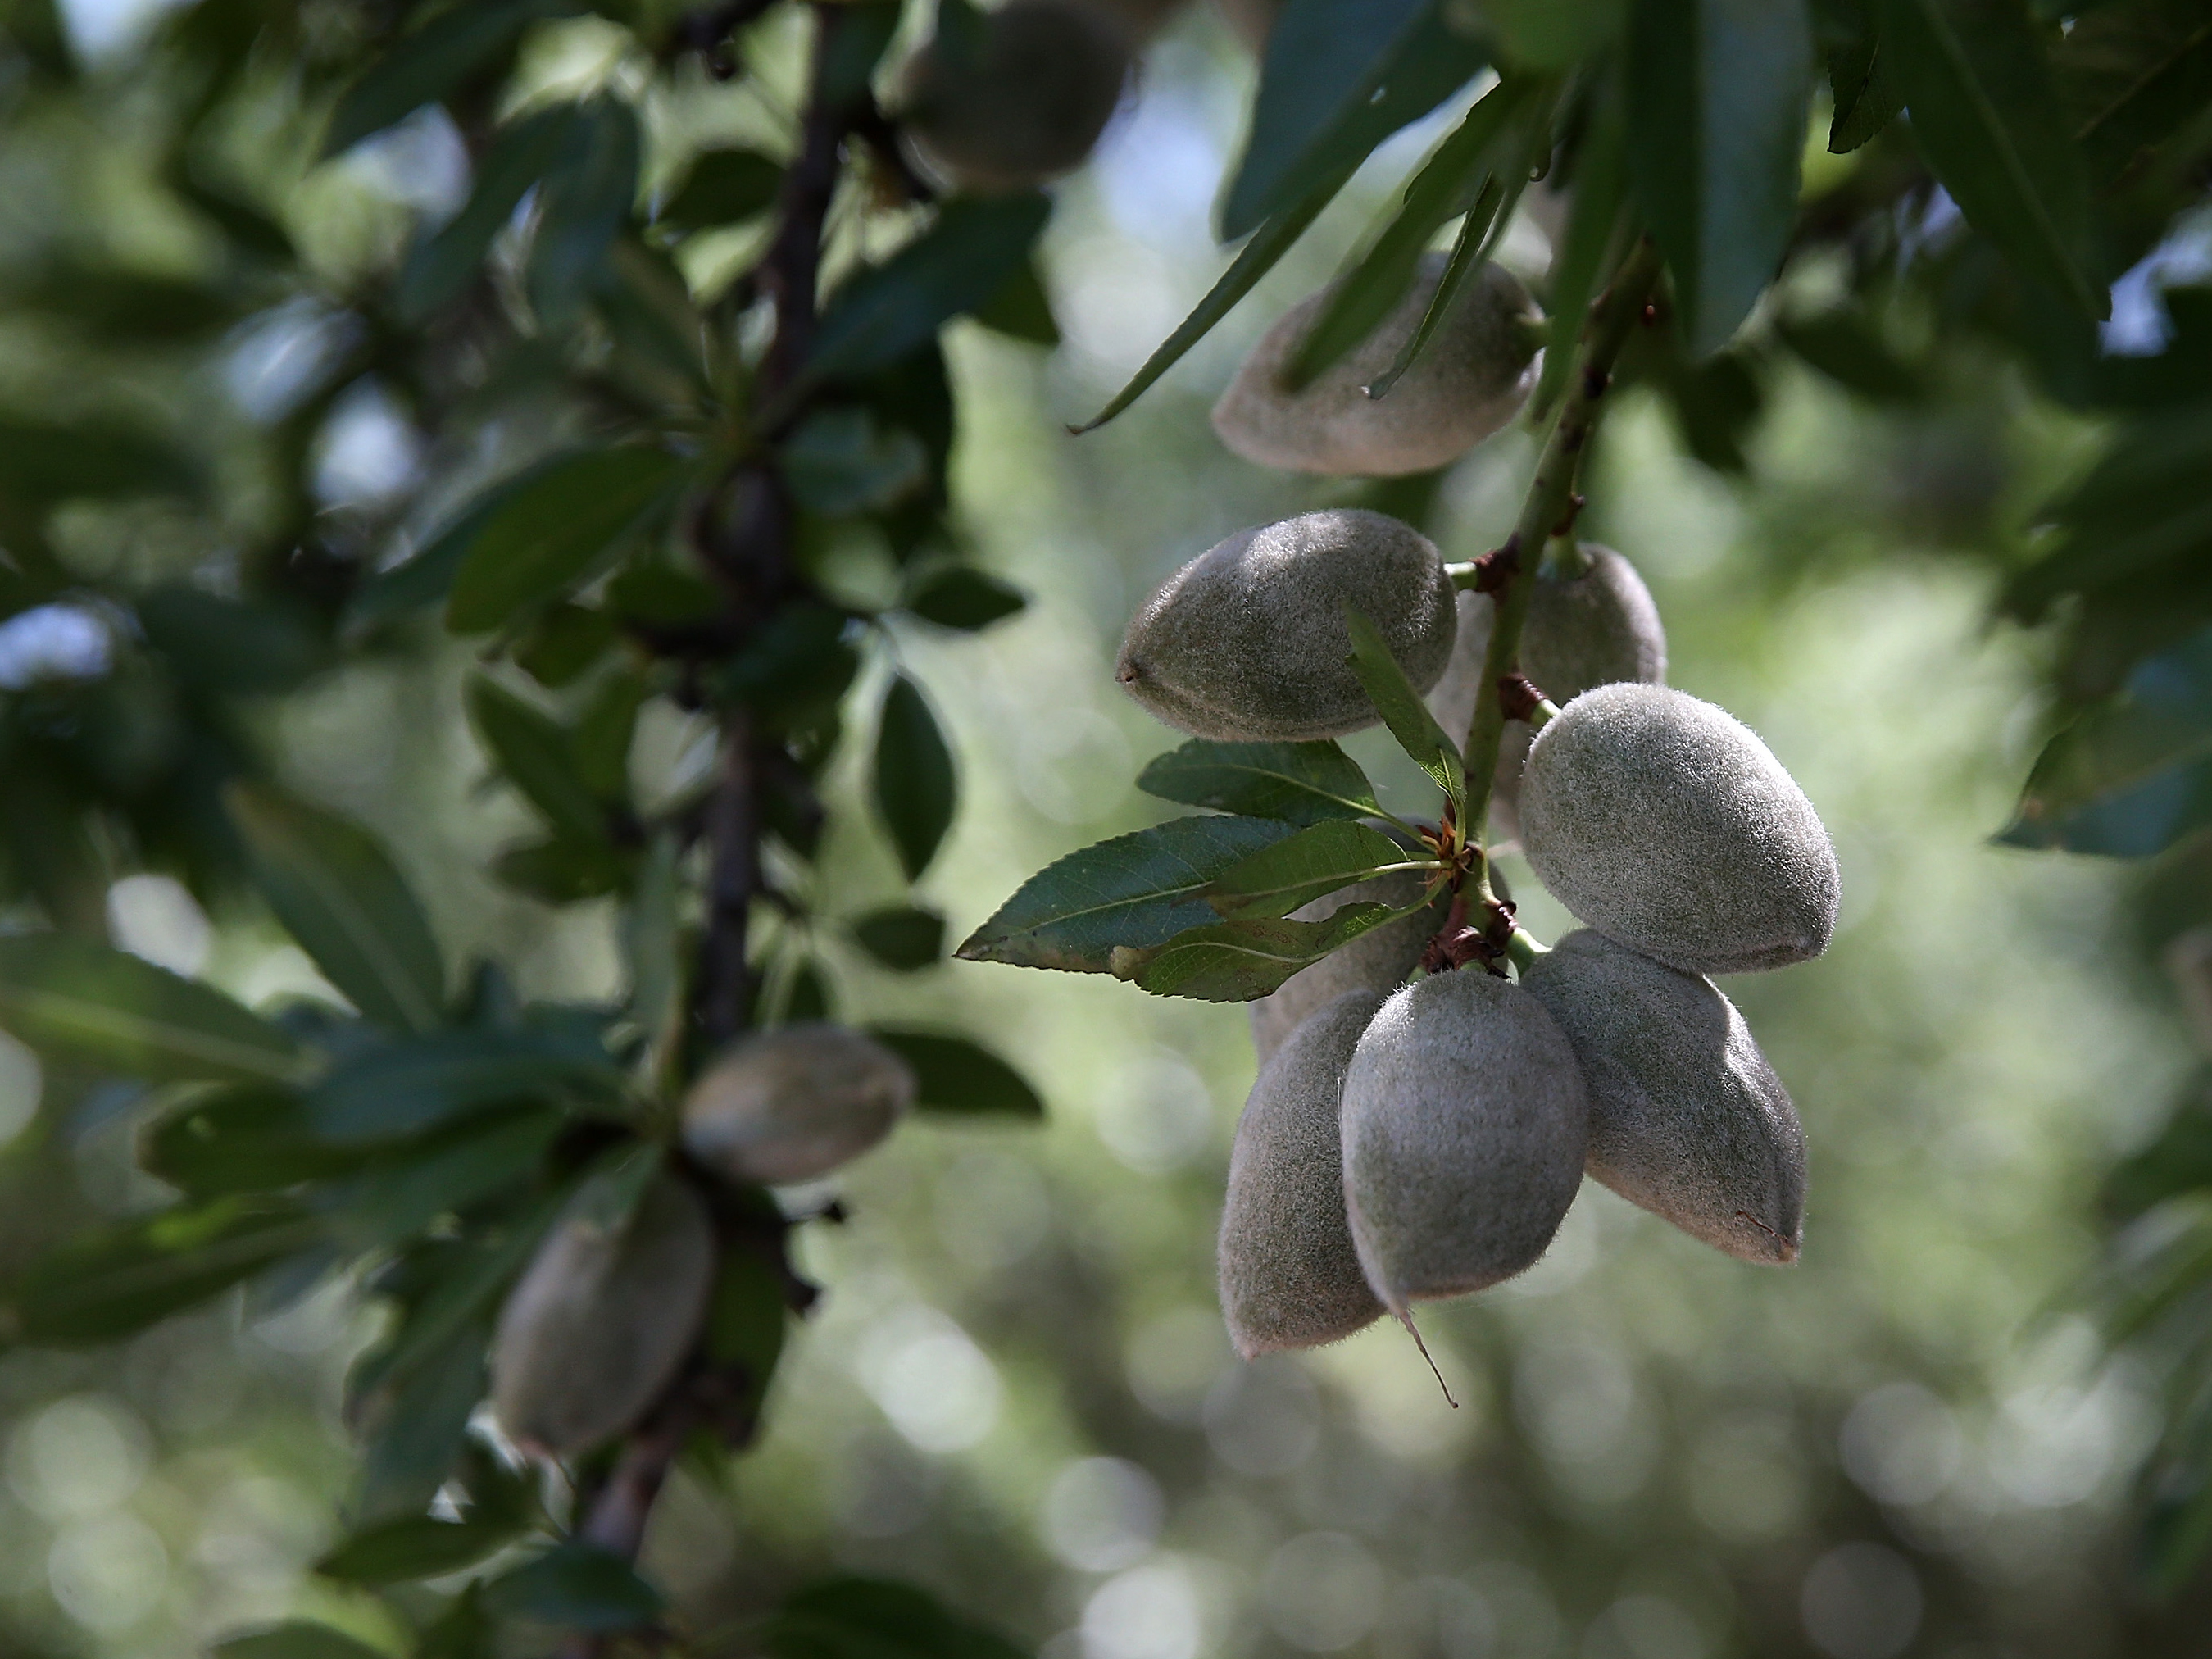 Almonds hang from a branch at an orchard in Firebaugh, Calif. Despite the strain of prolonged drought, in 2014, California farms sold $54 billion worth of crops like almonds or grapes, and animal products like milk.